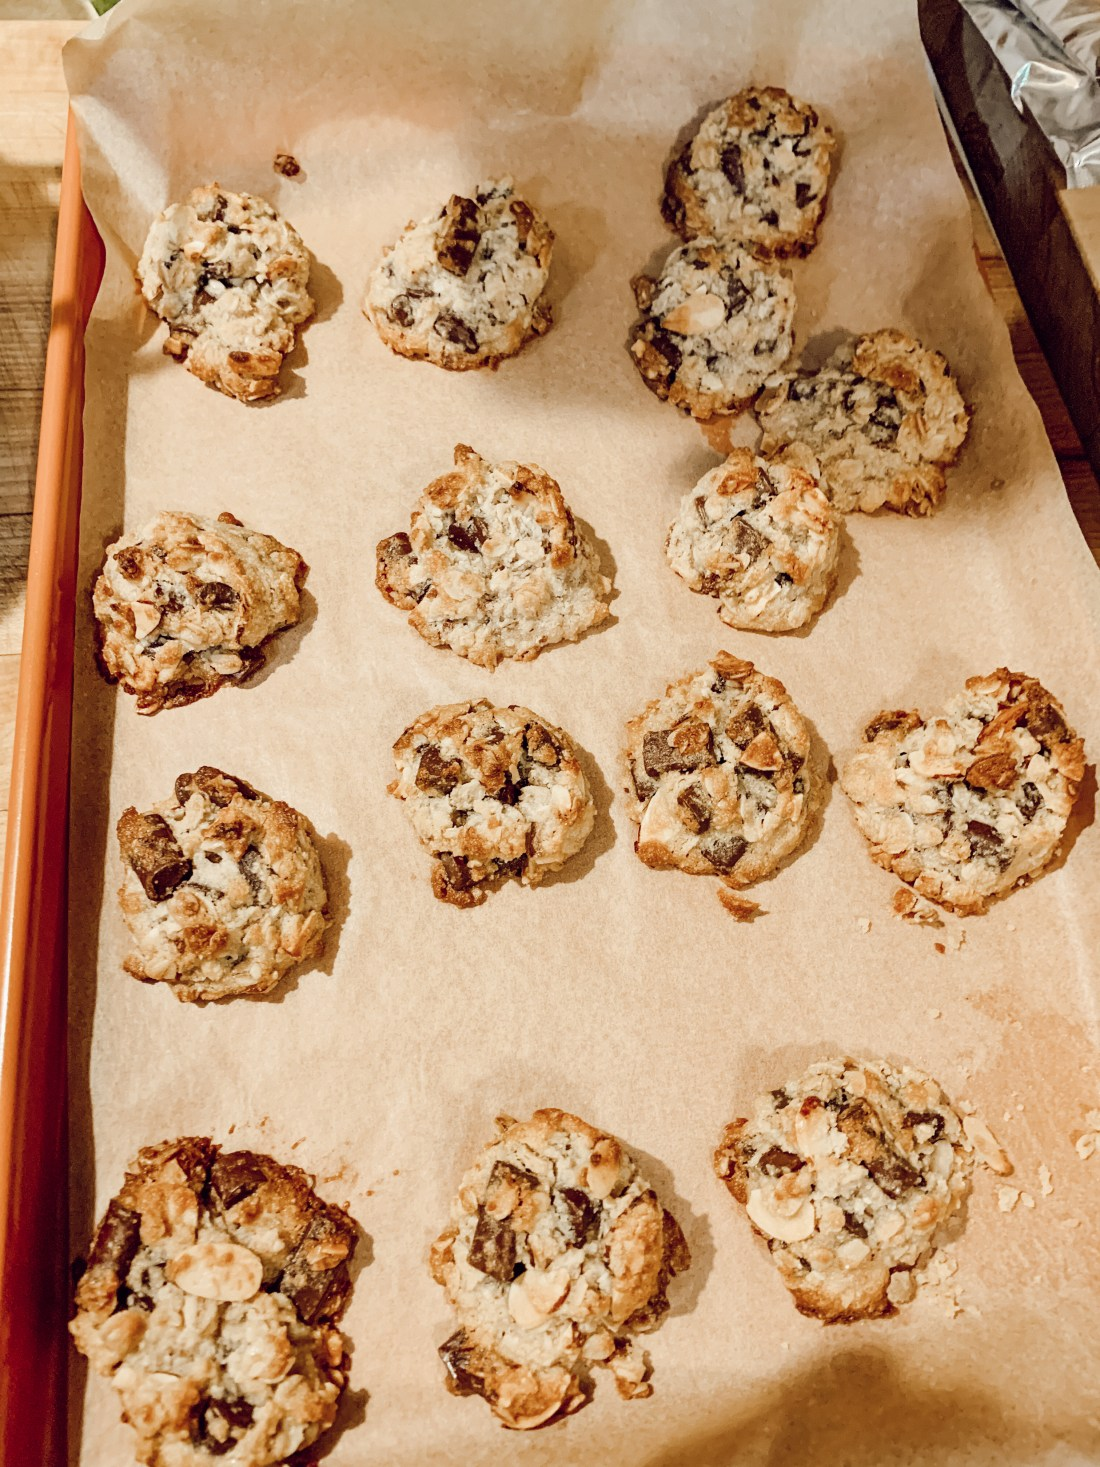 almond chocolate chip cookies, healthy eating, vegan recipes, lifestyle, katina horton, lifestyle blogger, blogging community, food photography, simple functional grace-filled living